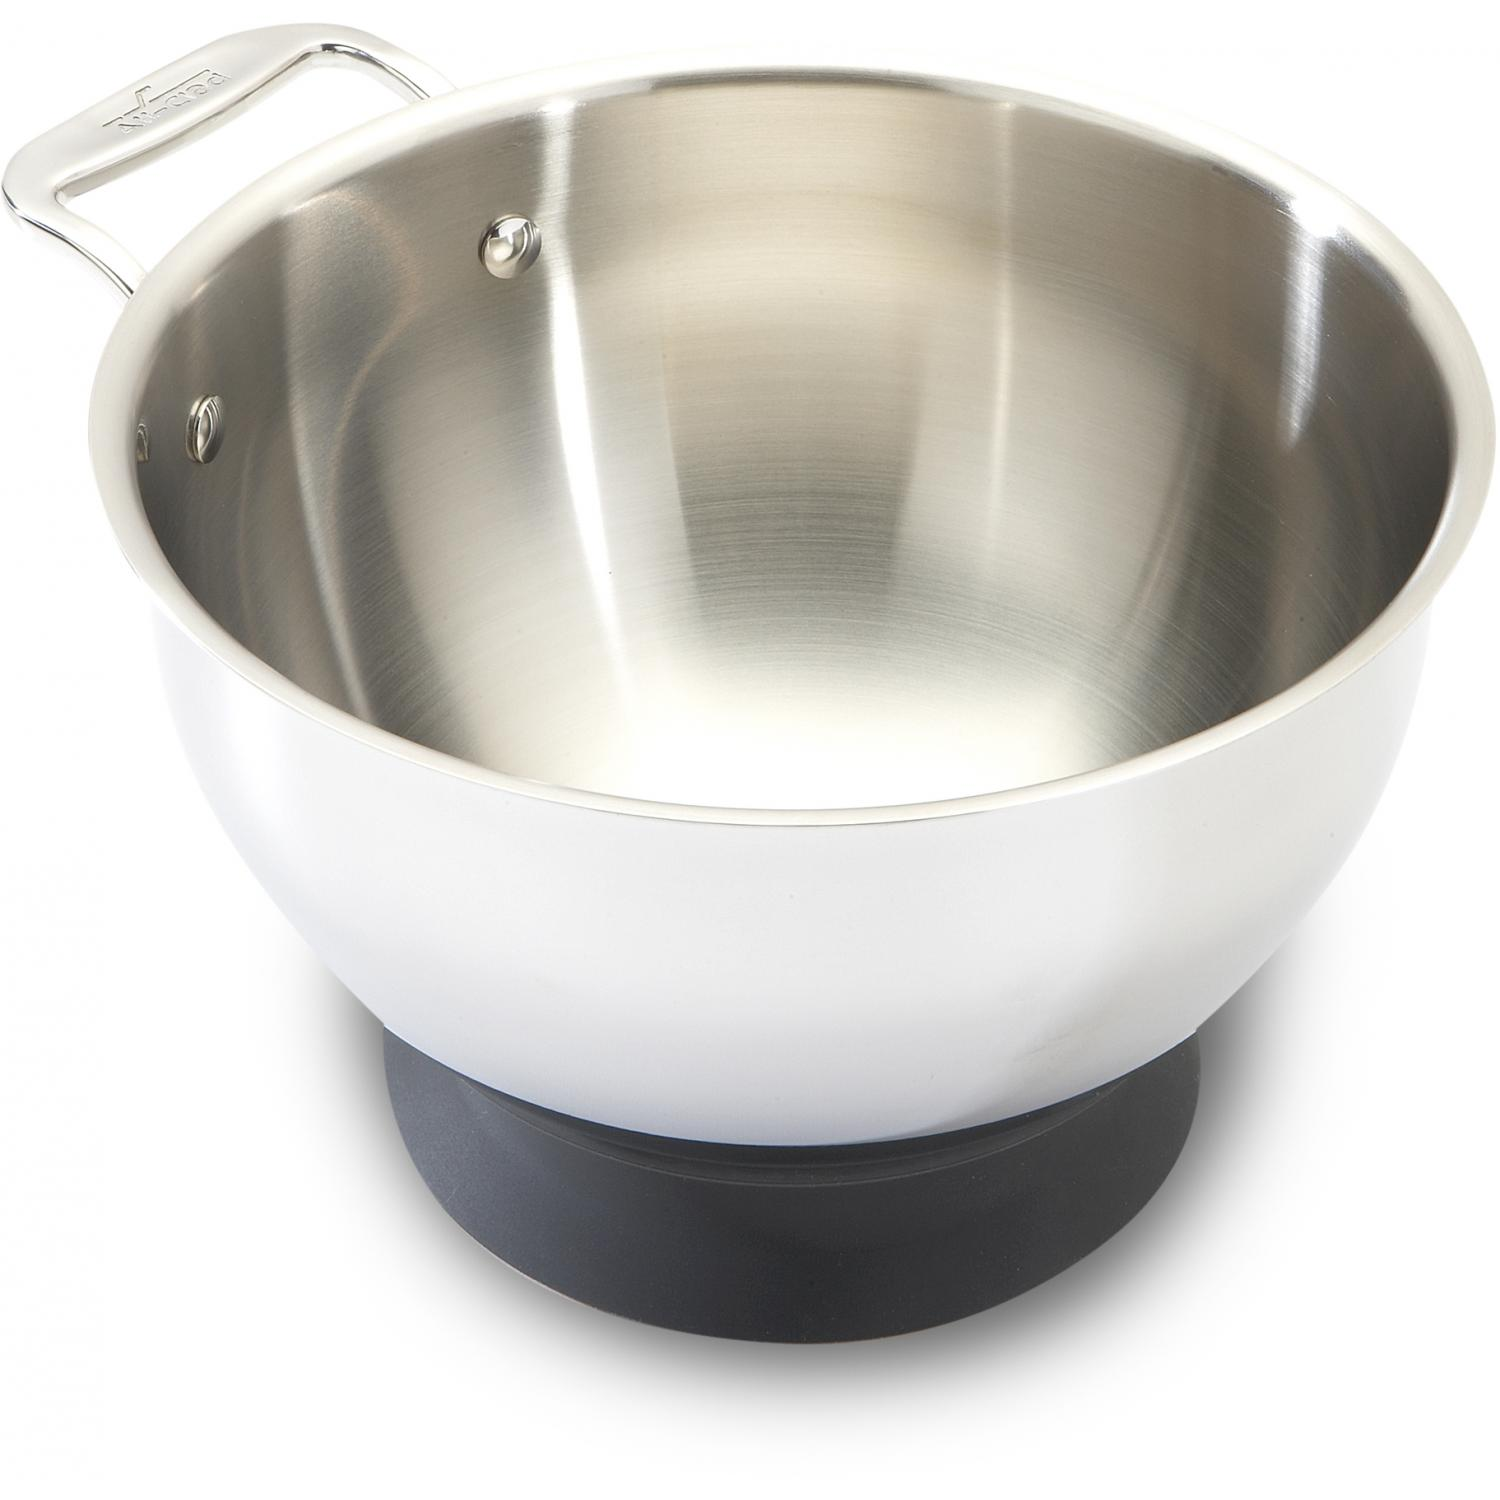 All-Clad Stainless 3-Quart Spherical Bowl